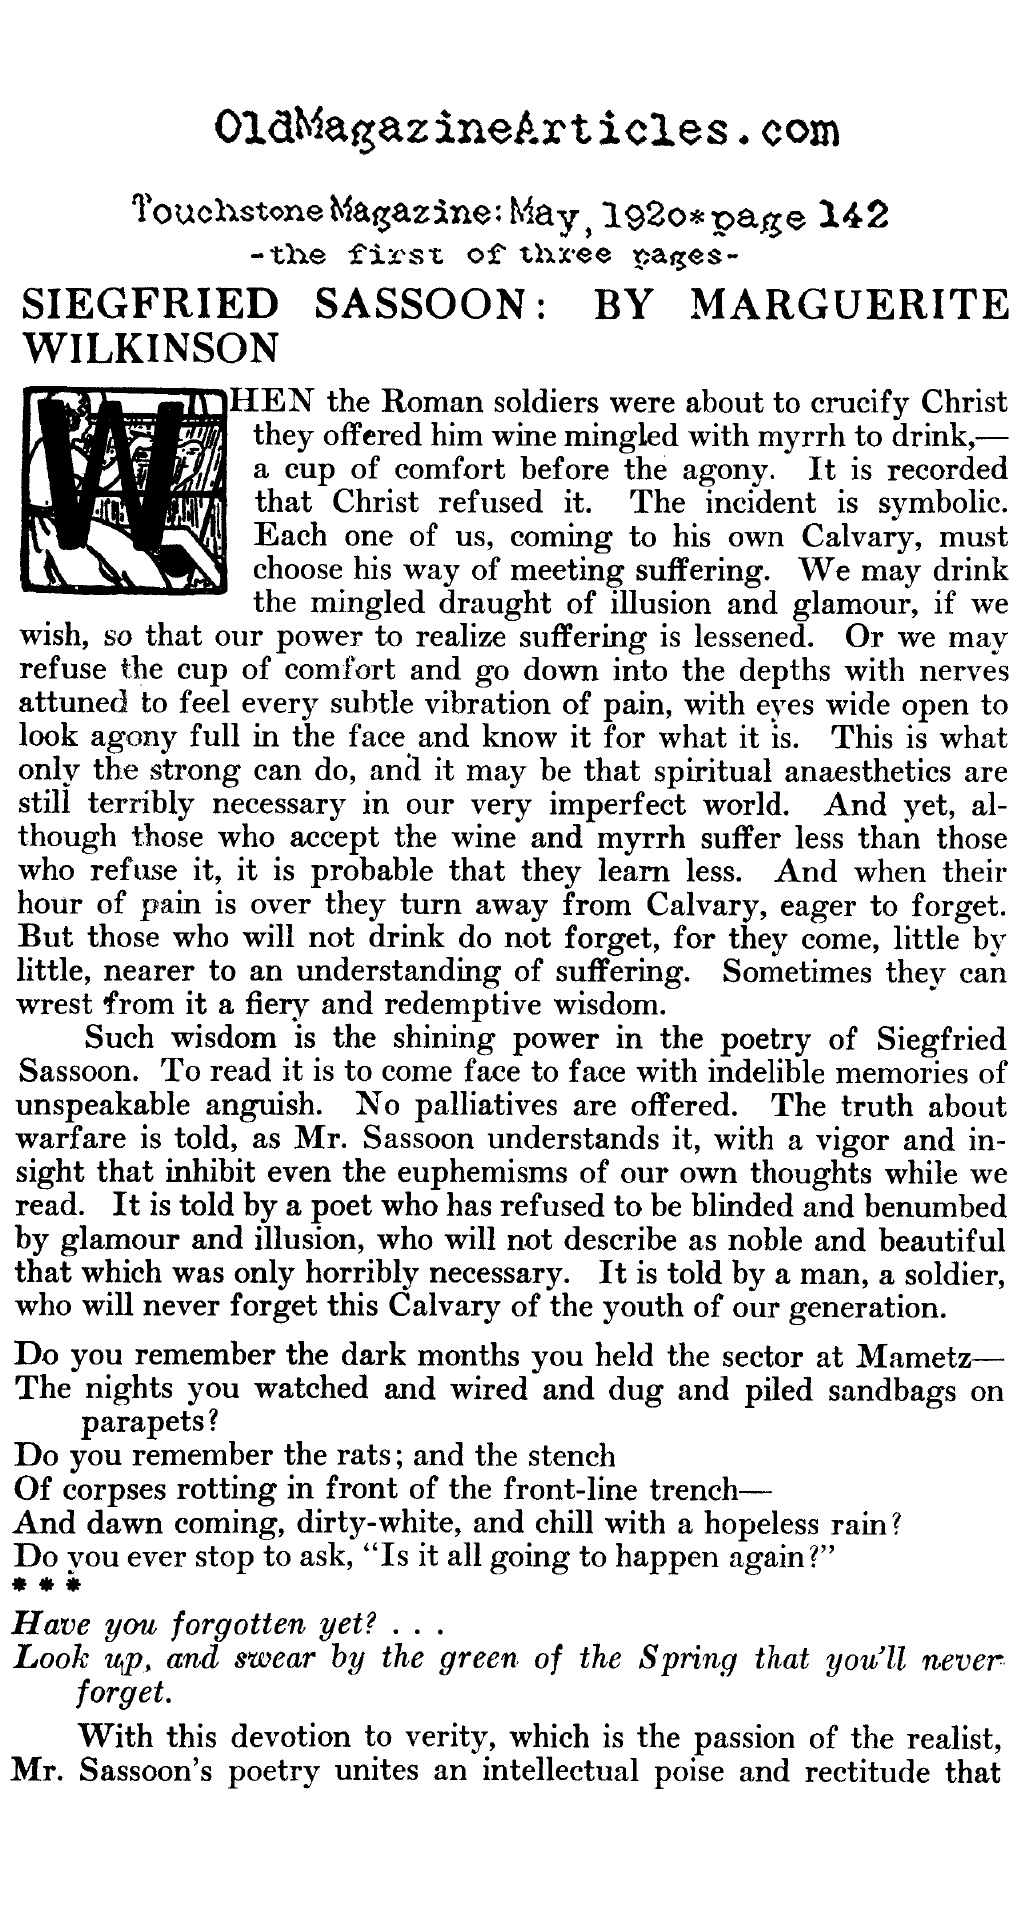 Siegfried Sassoon Reviewed (Touchstone Magazine, 1920)